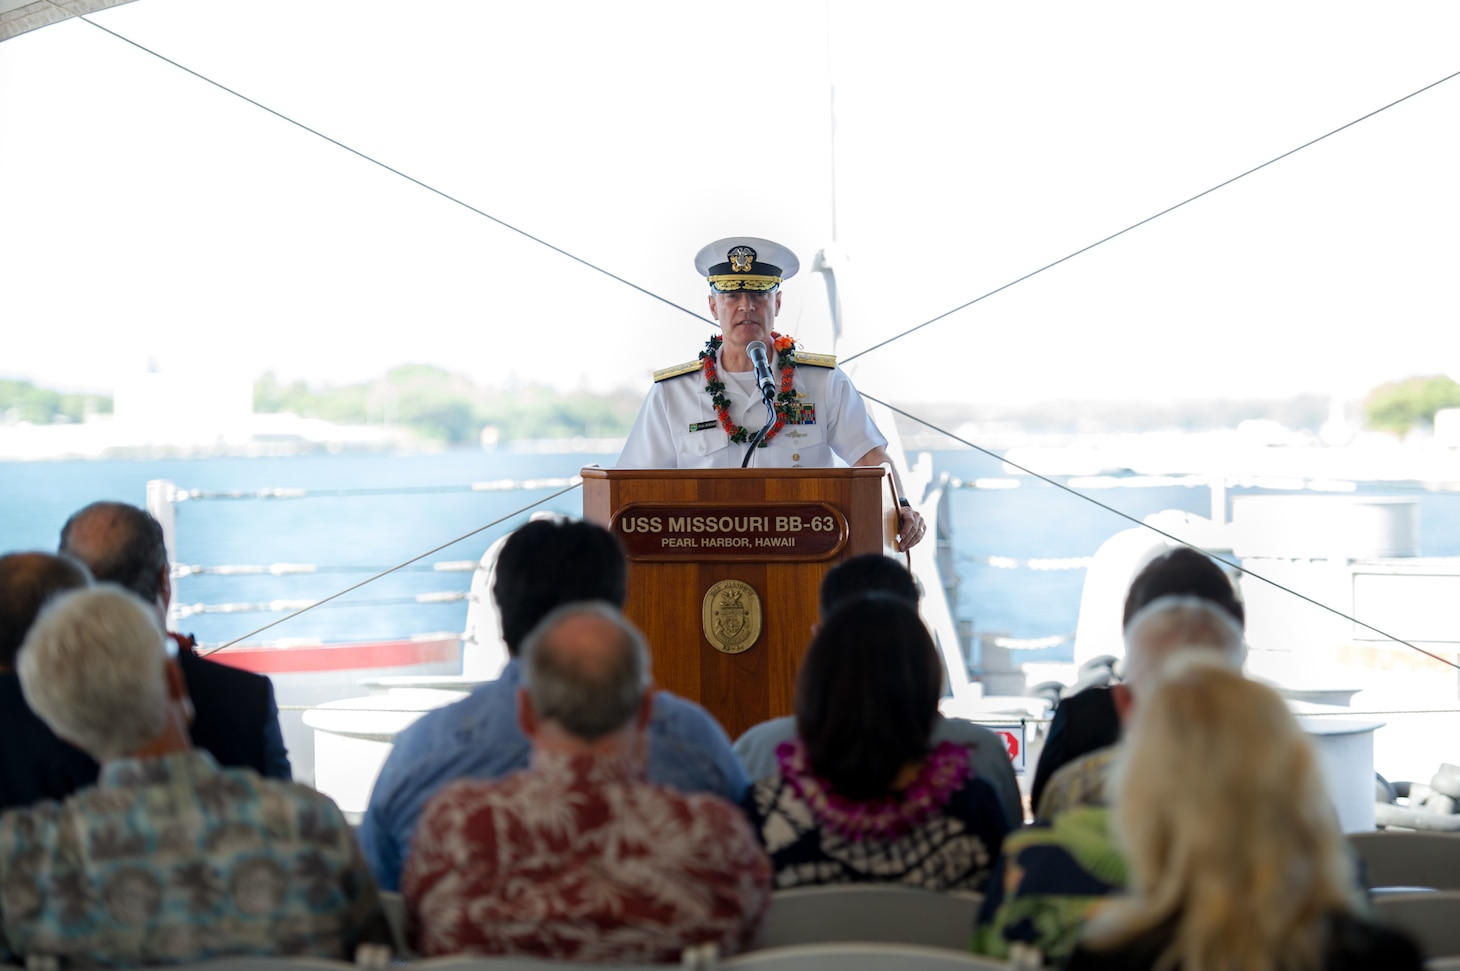 160902-N-LY160-135 PEARL HARBOR (September 2, 2016) - Rear Adm. Fritz Roegge, commander, Submarine Force U.S. Pacific Fleet, addresses guests during a ceremony marking the 71st anniverary of the end of World War II aboard the Battleship Missouri Memorial in Pearl Harbor. The annual ceremony pays tribute to service members who served and sacrificed during the war. (U.S. Navy photo by Mass Communication Specialist 2nd Class Michael H. Lee)